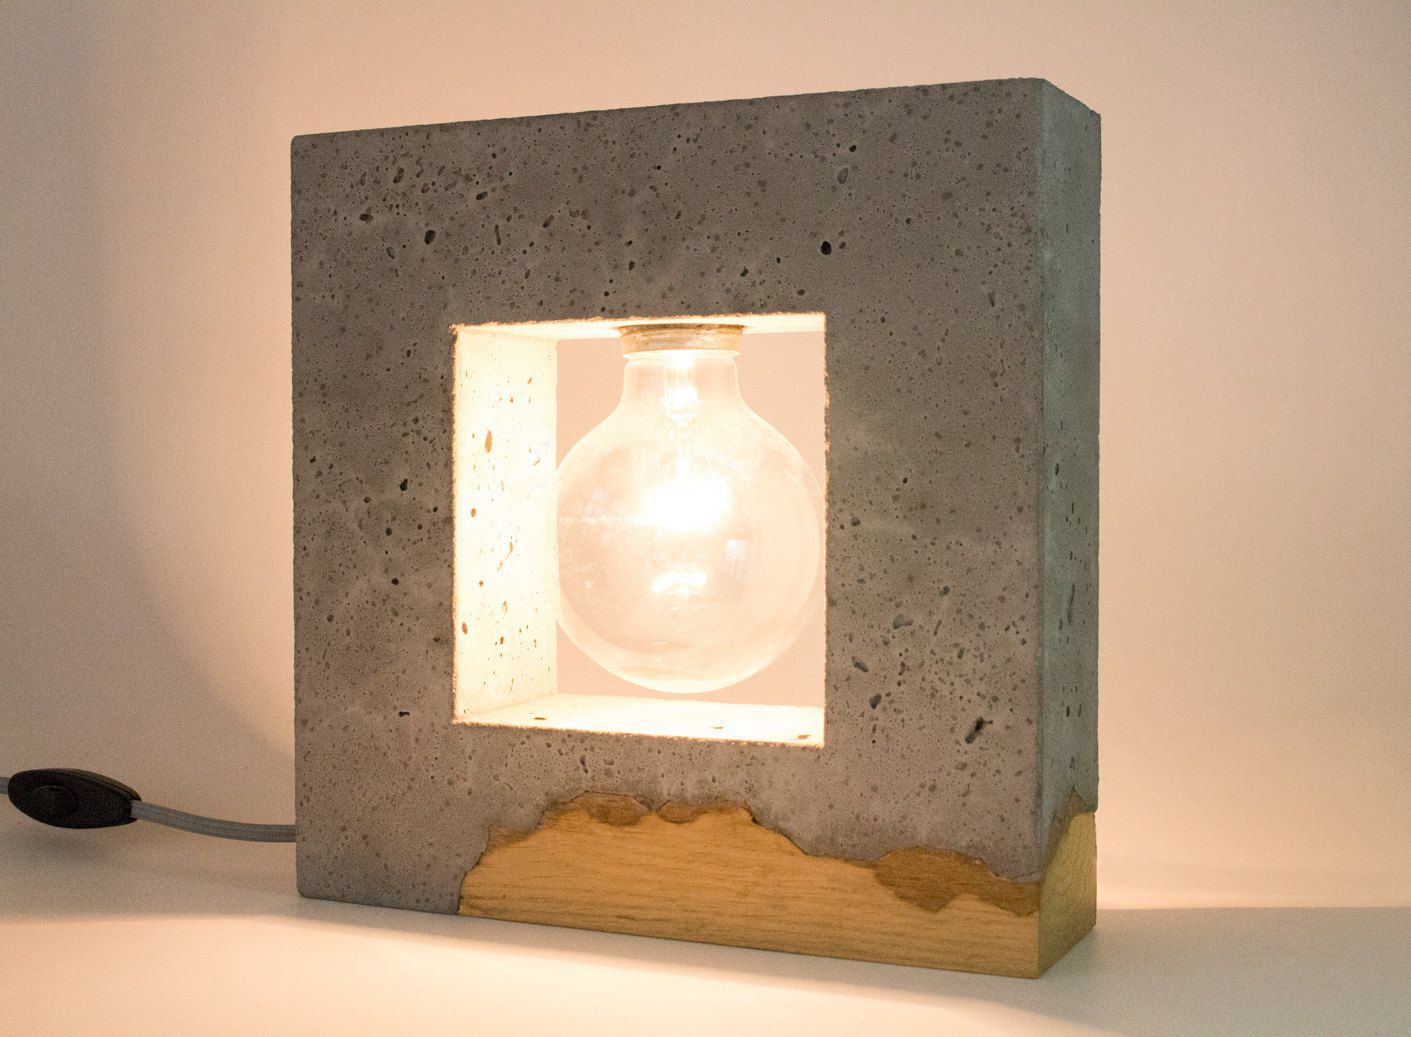 Inscrito concrete table lamp concrete and wood by ardomadesign on inscrito concrete table lamp concrete and wood by ardomadesign on etsy https geotapseo Choice Image